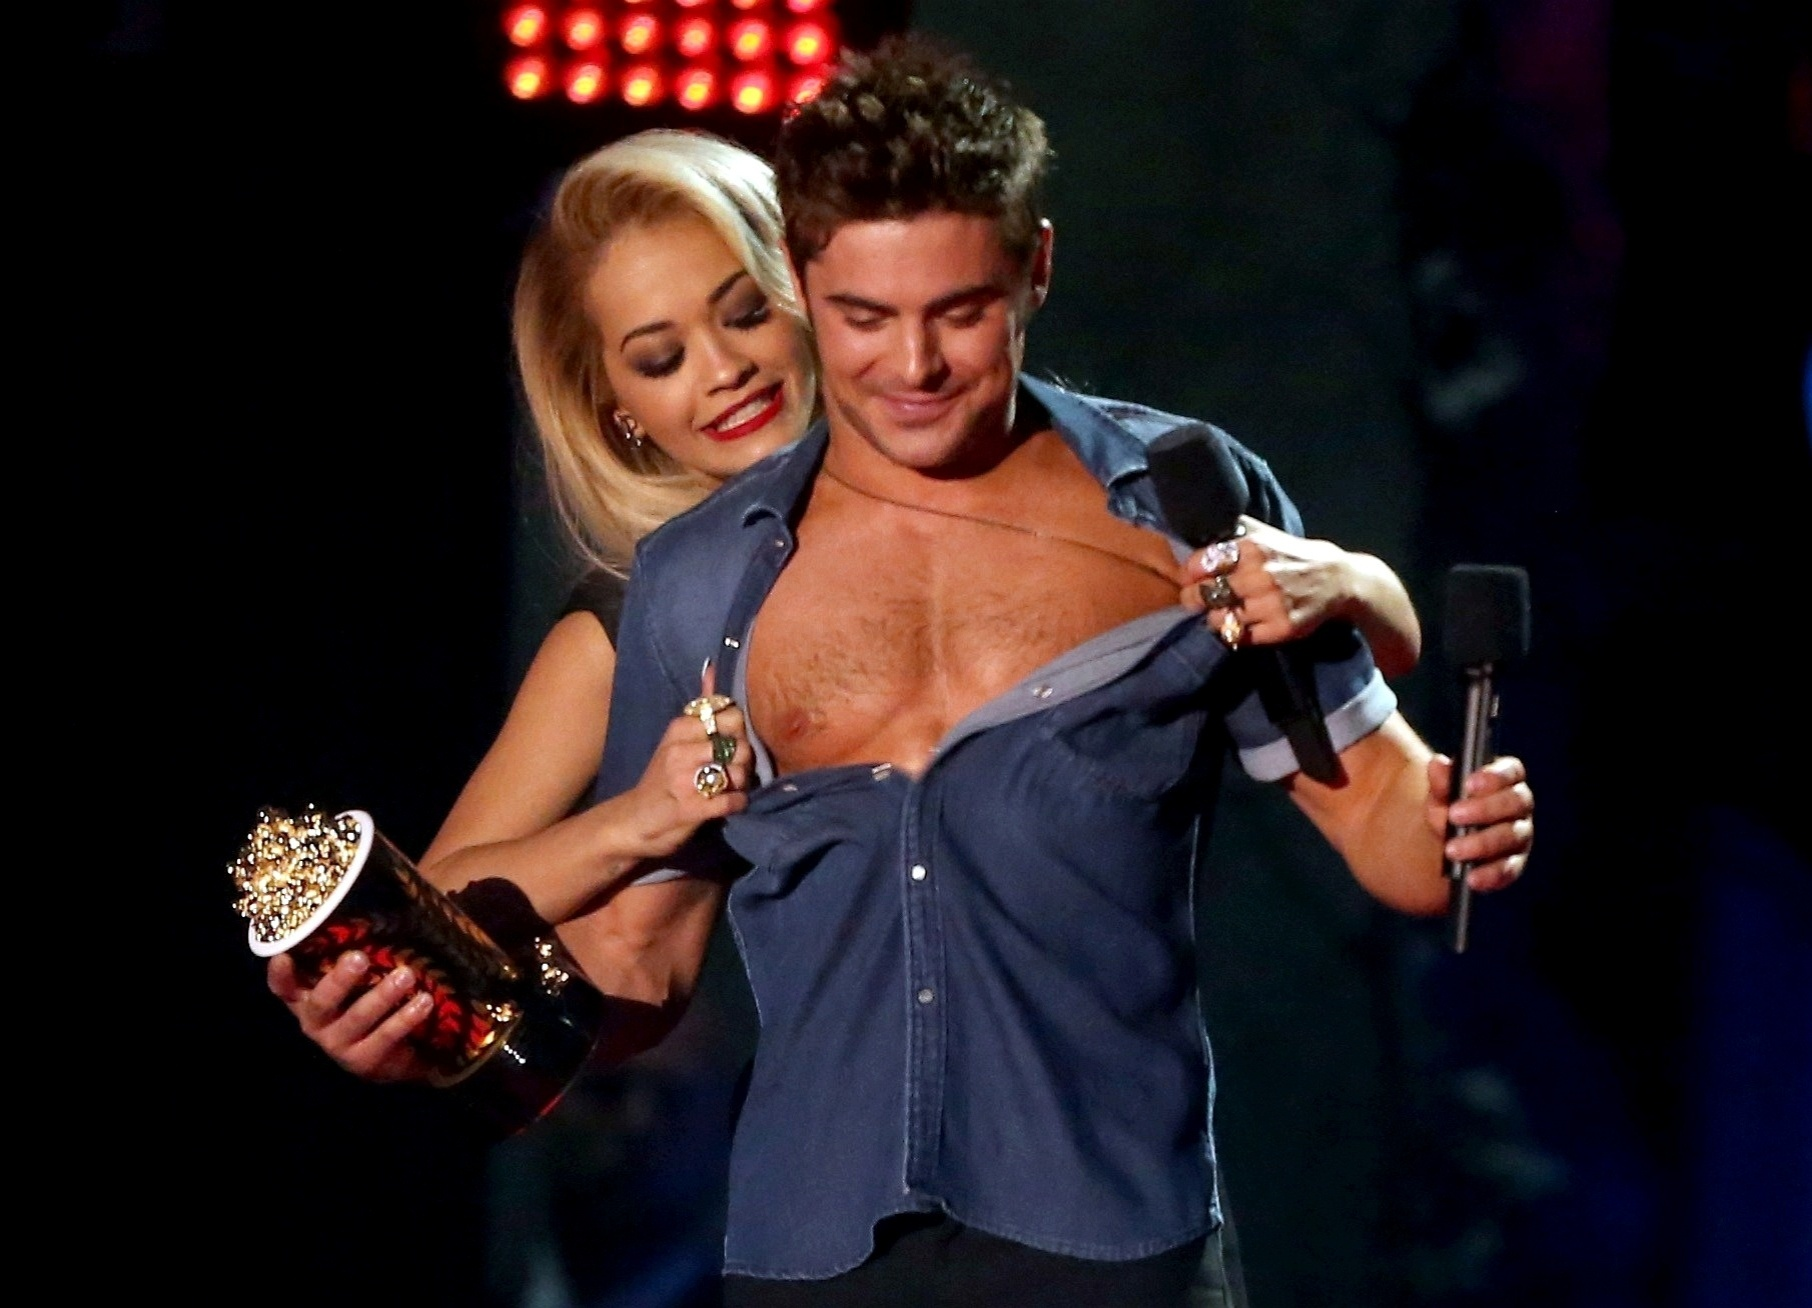 13.abril.2014 - Rita Ora tira a camisa de Zac Efron no MTV Movie Awards 2014, na noite deste domingo (13), no Nokia Theatre, em Los Angeles